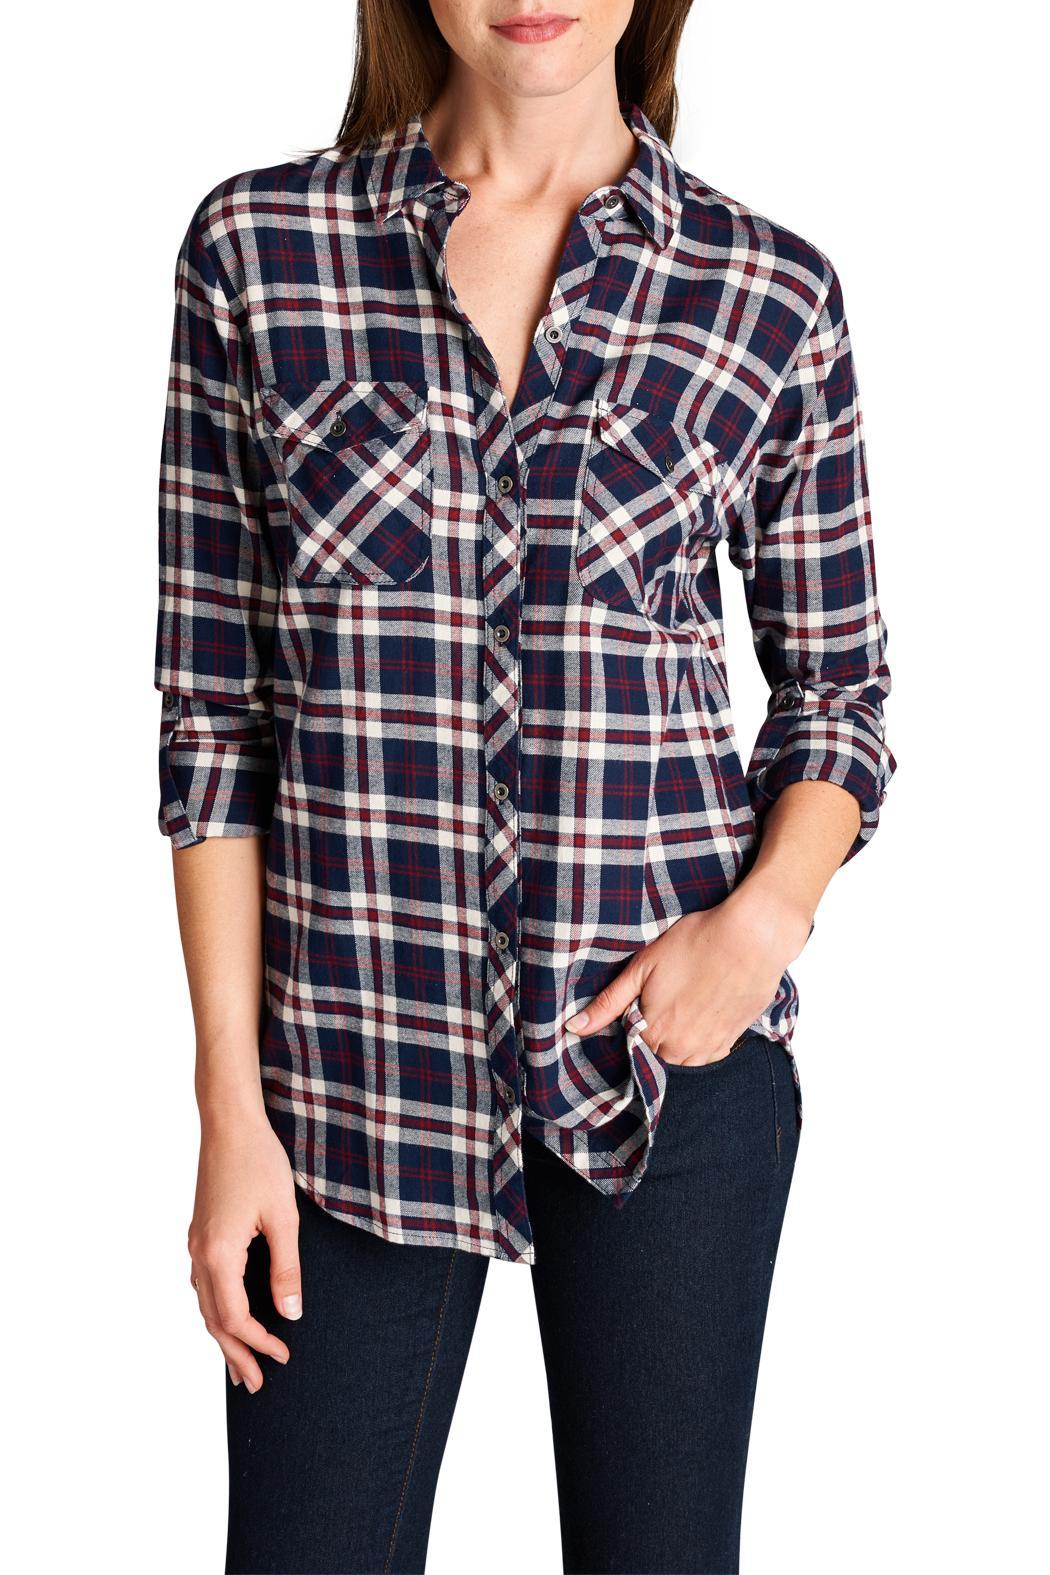 Staccato Navy Plaid Shirt From Texas By Minx Boutique